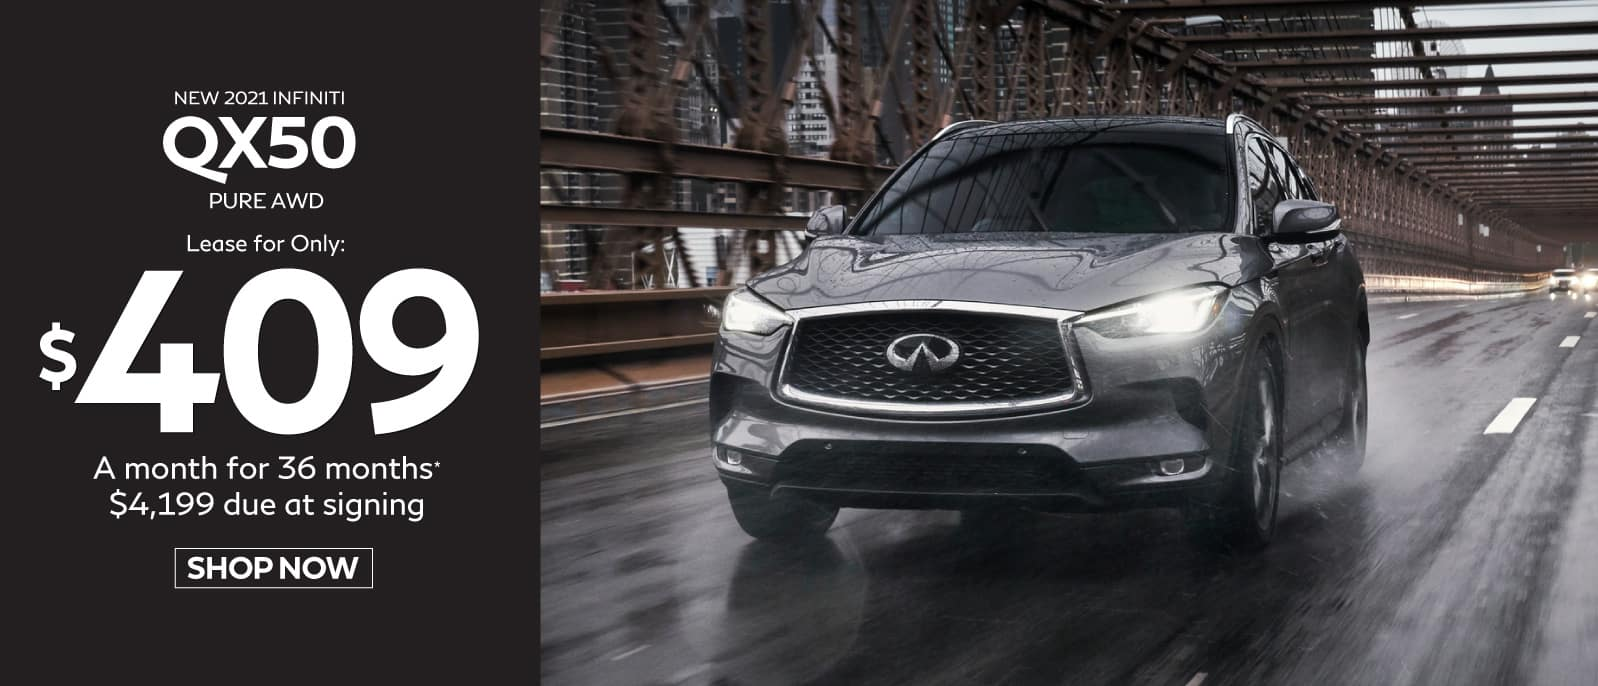 2021 QX50 Luxe AWD lease for only $409 Per month for 39 months $4,199 due at signing. Shop now.